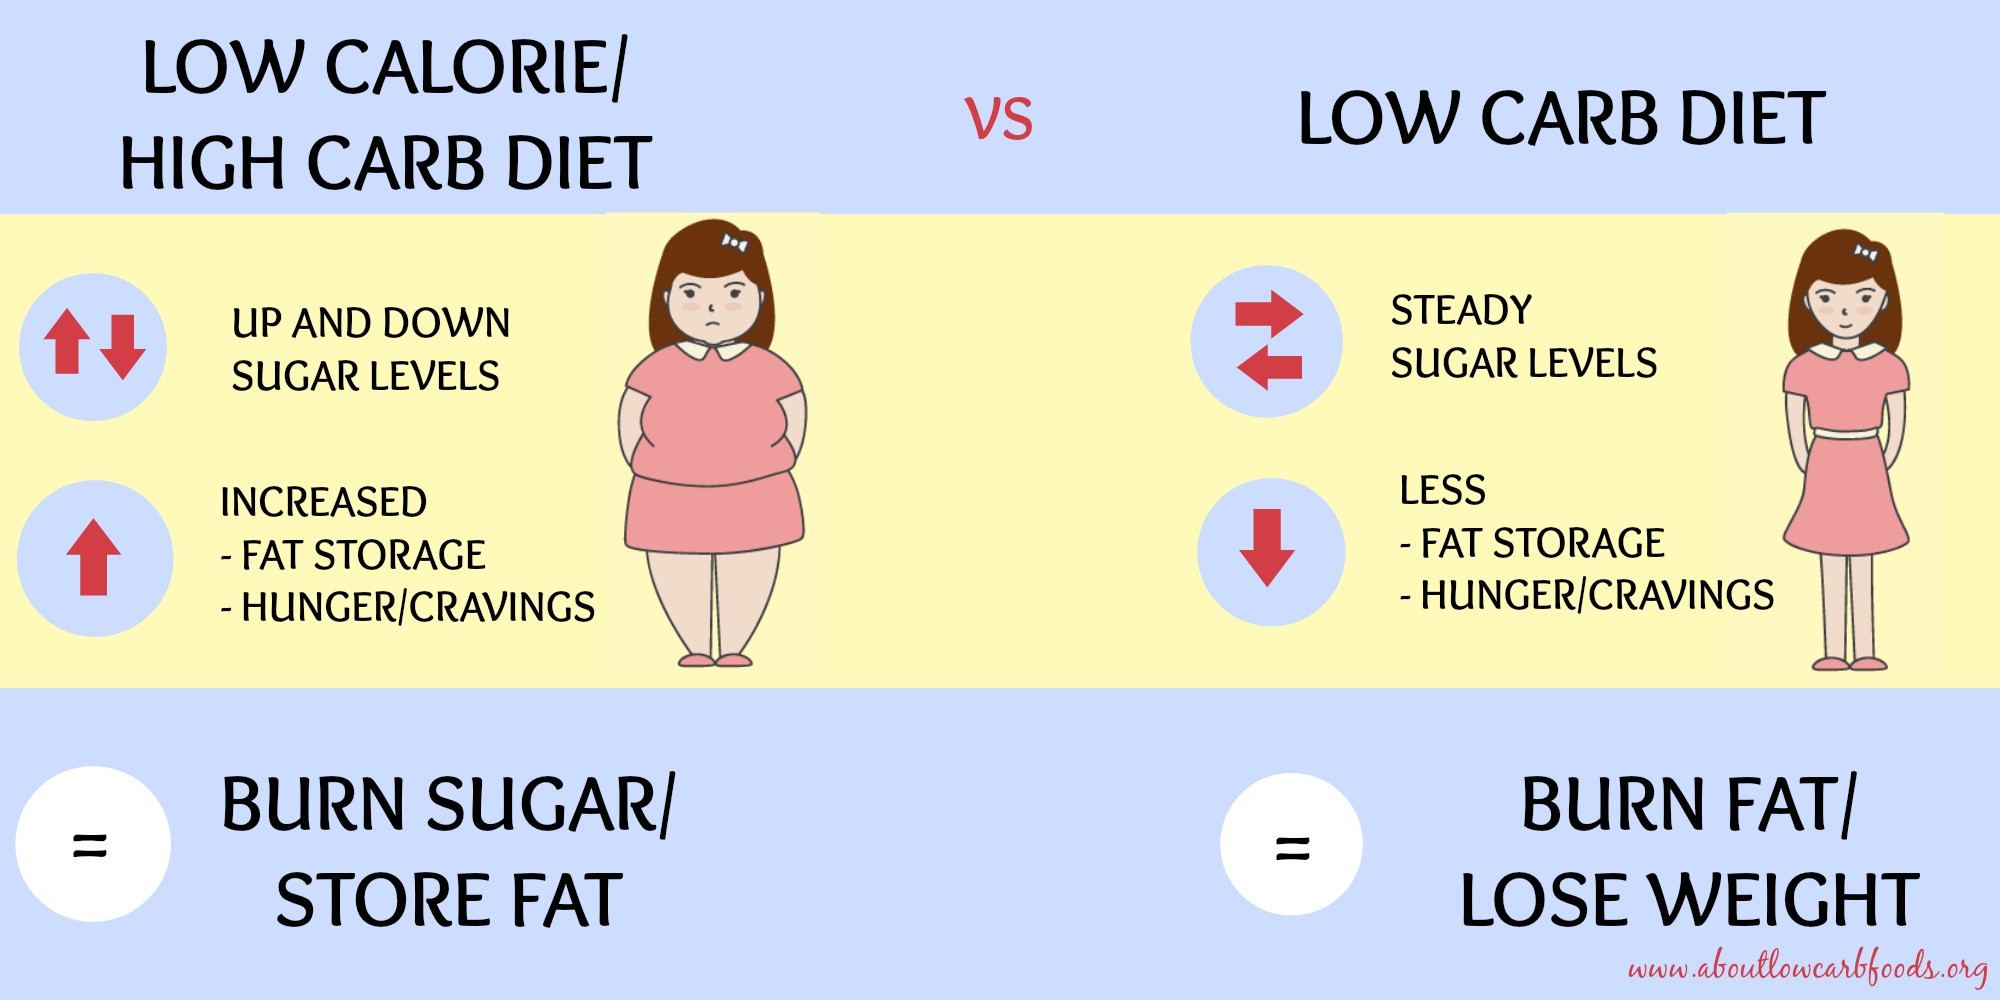 Low Fat Diet Losing Weight  How to Lose Belly Fat 7 Proven Ways About Low Carb Foods